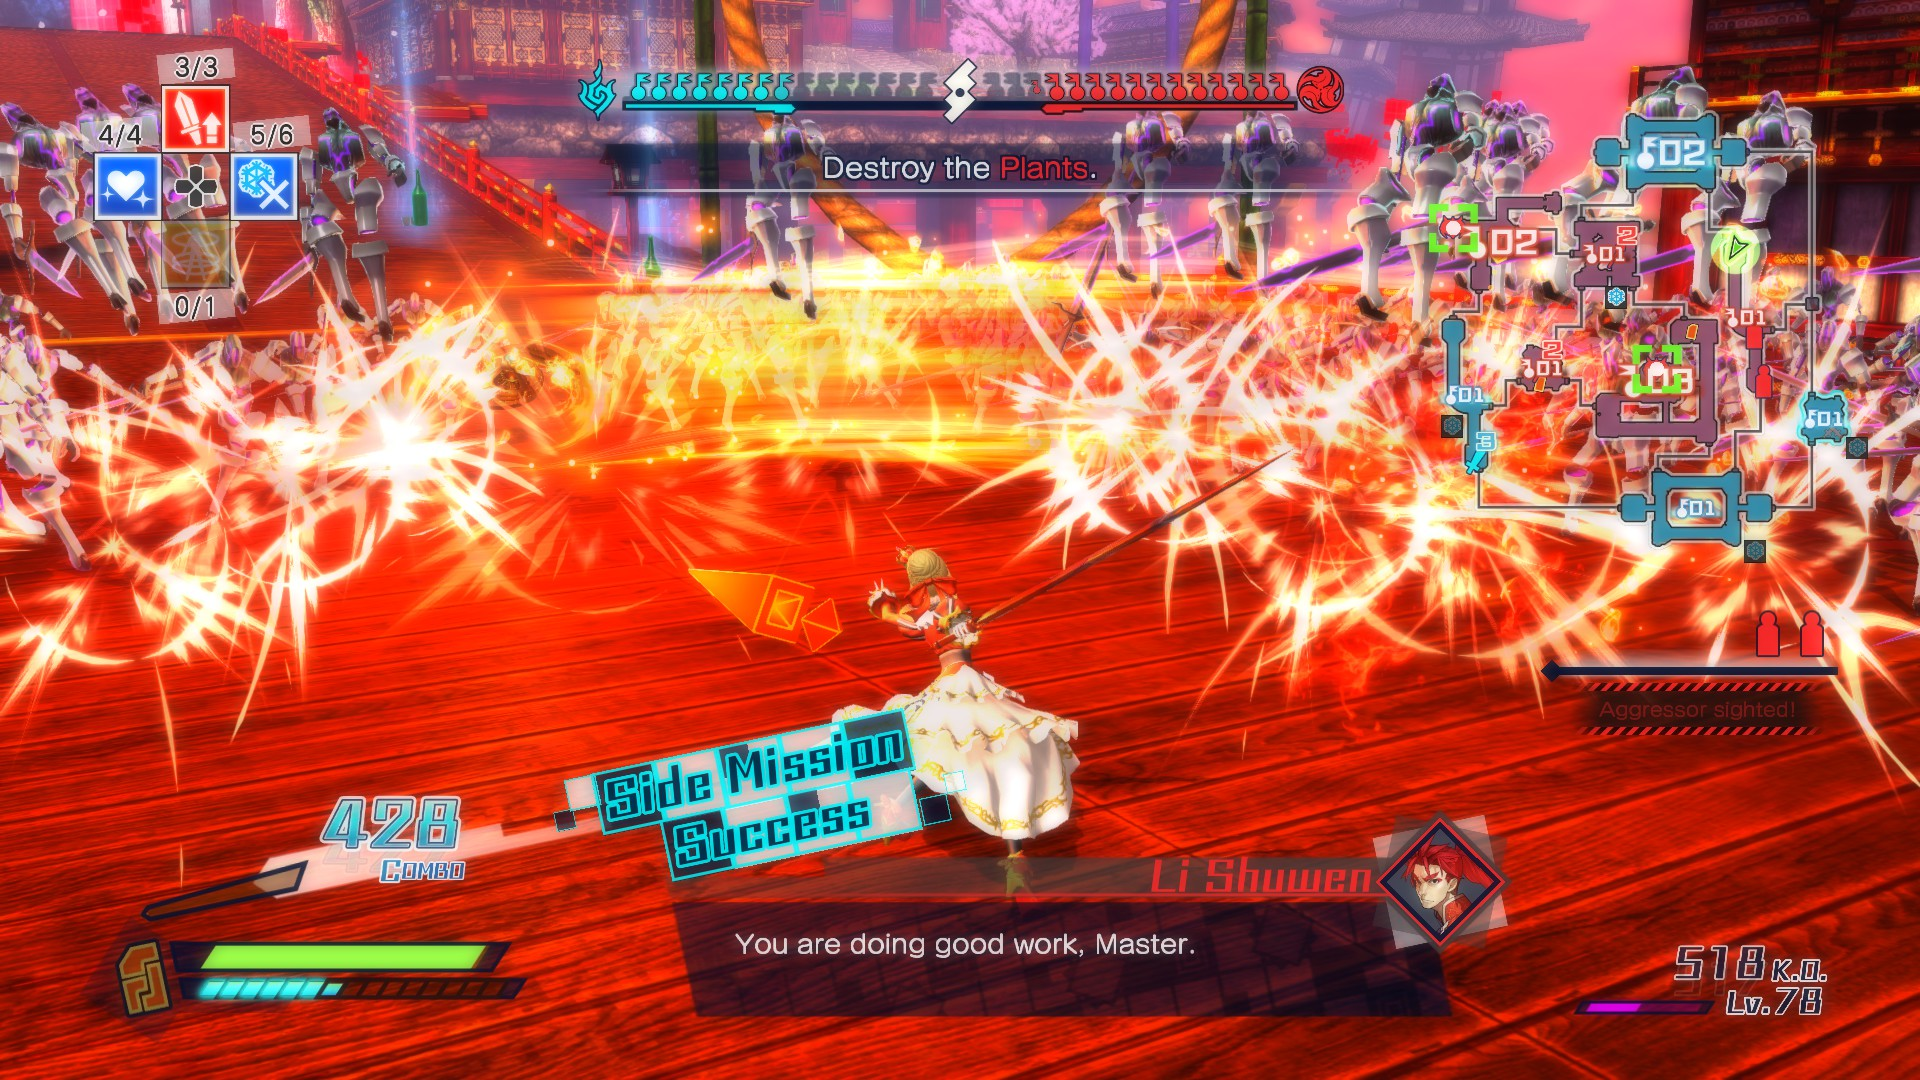 Find the best laptop for Fate/EXTELLA